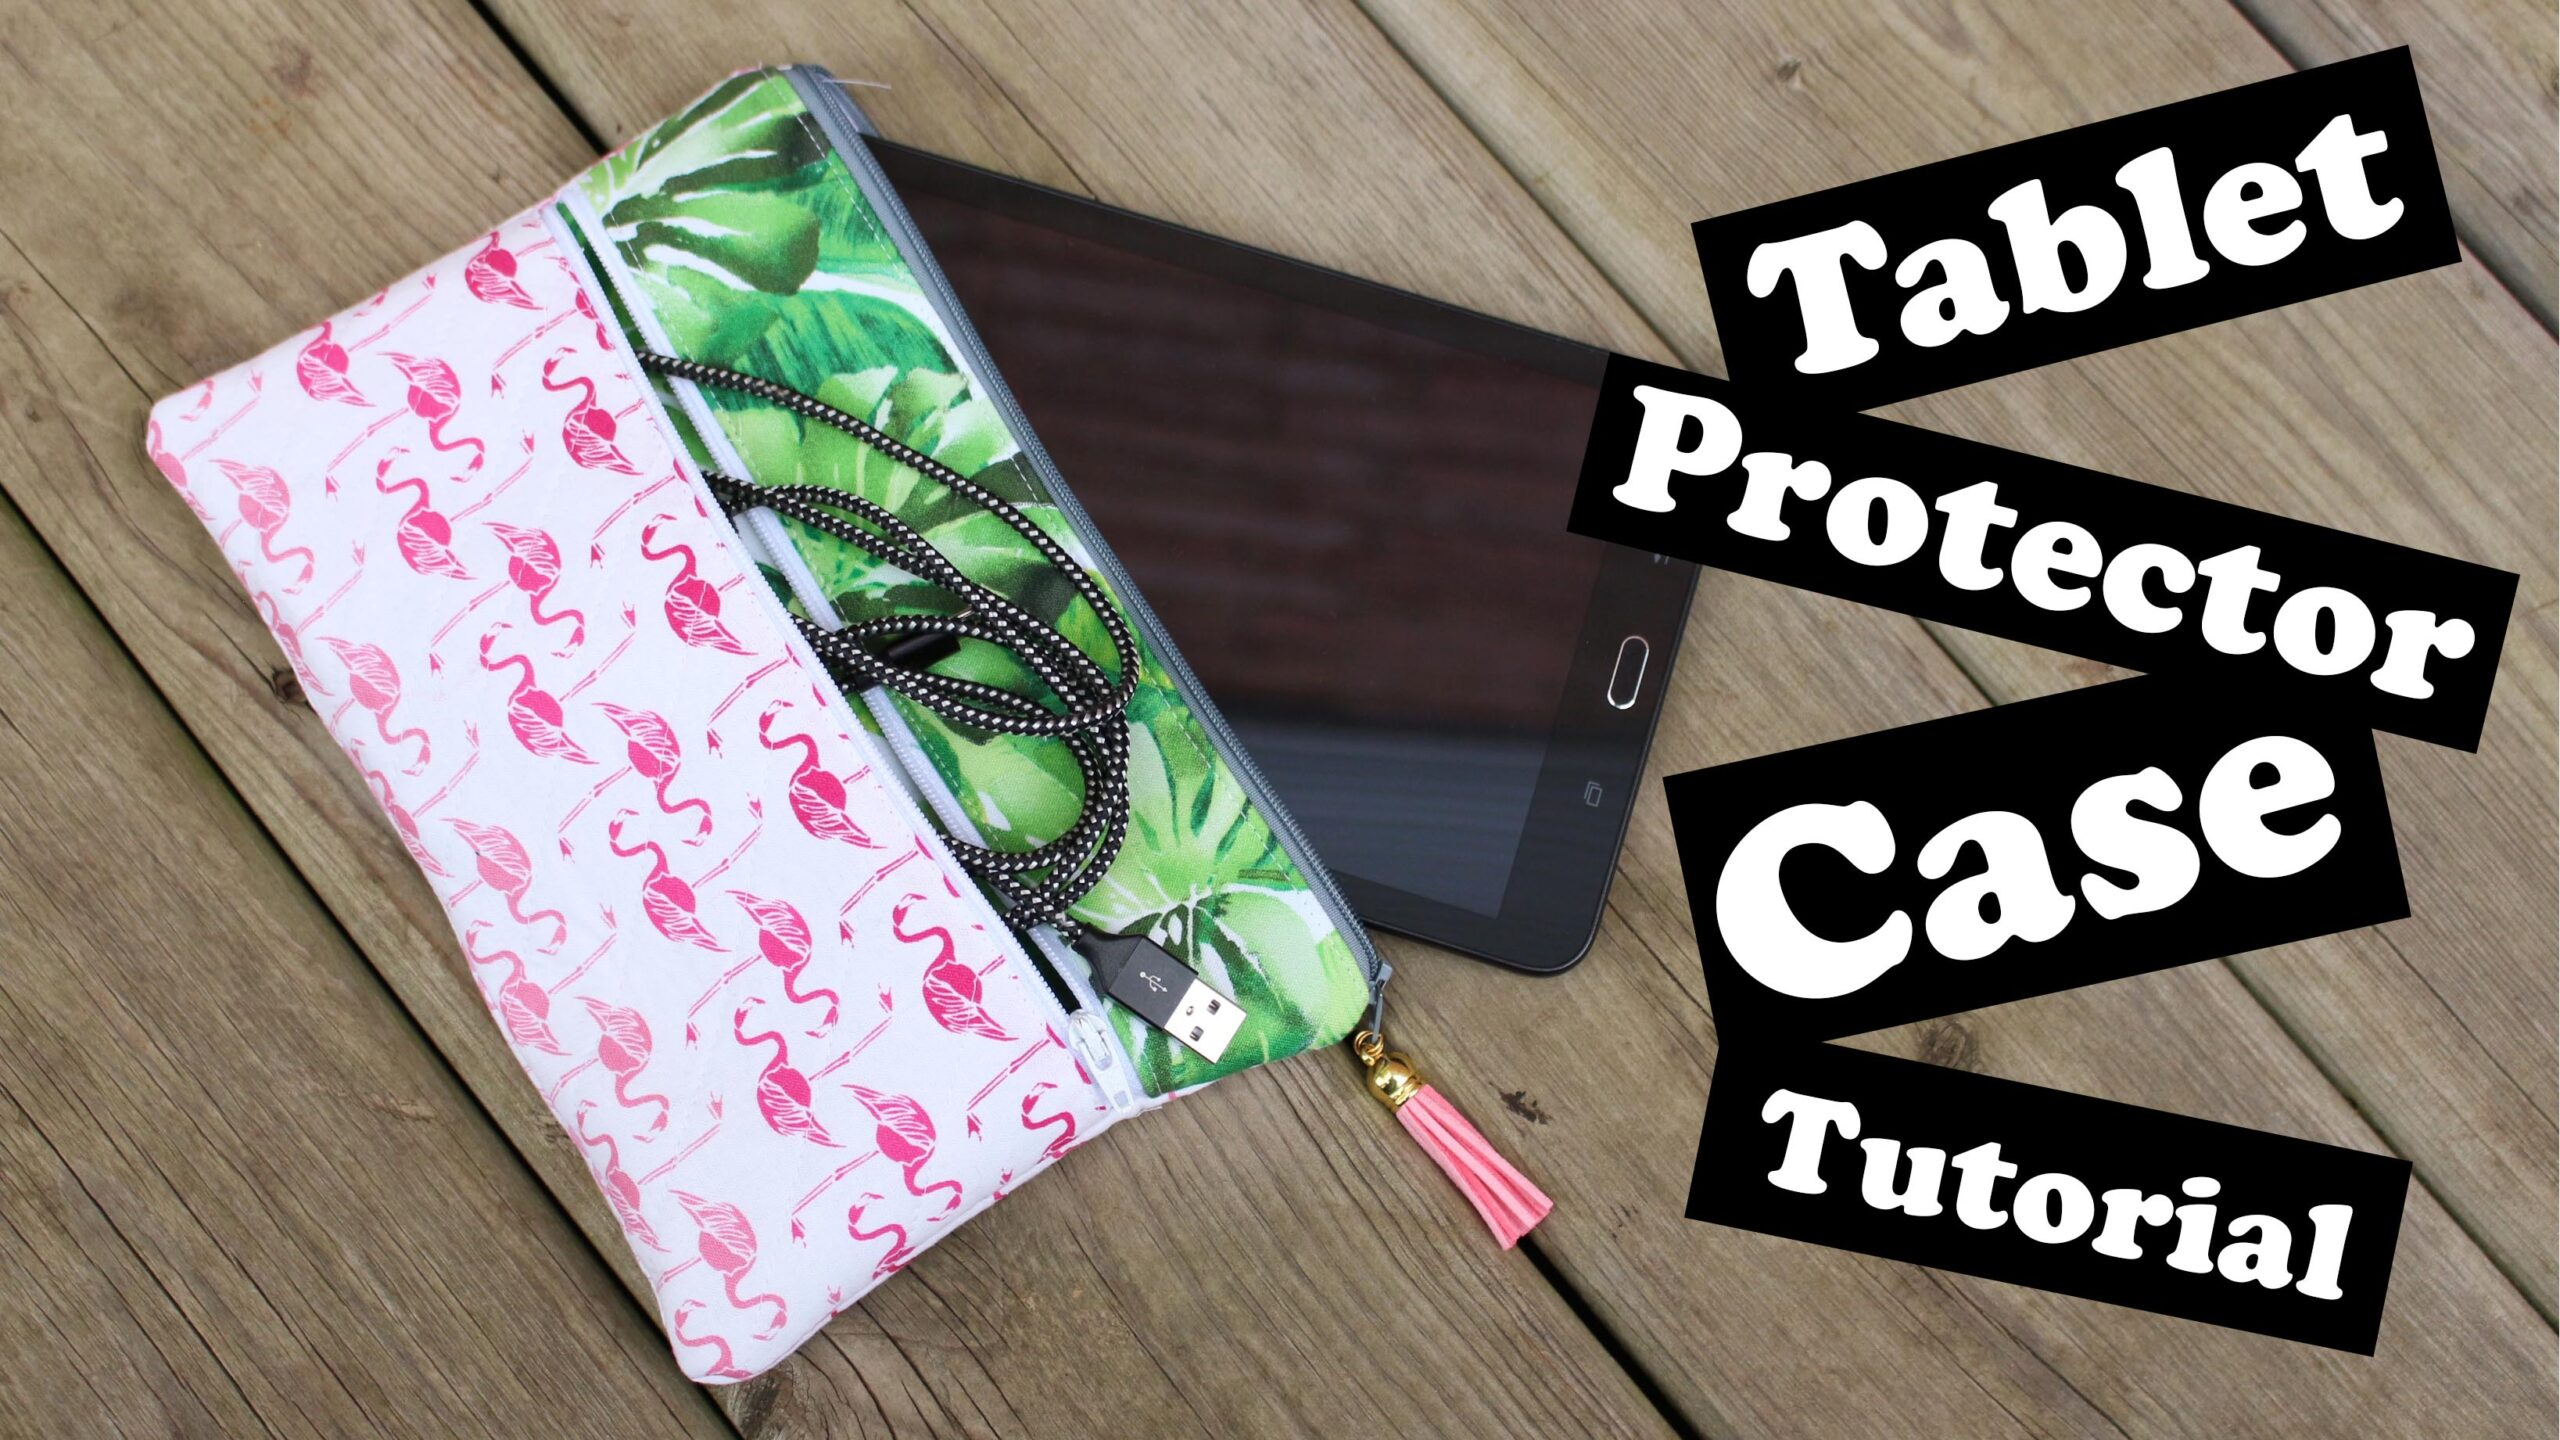 Tablet Protector Case Tutorial